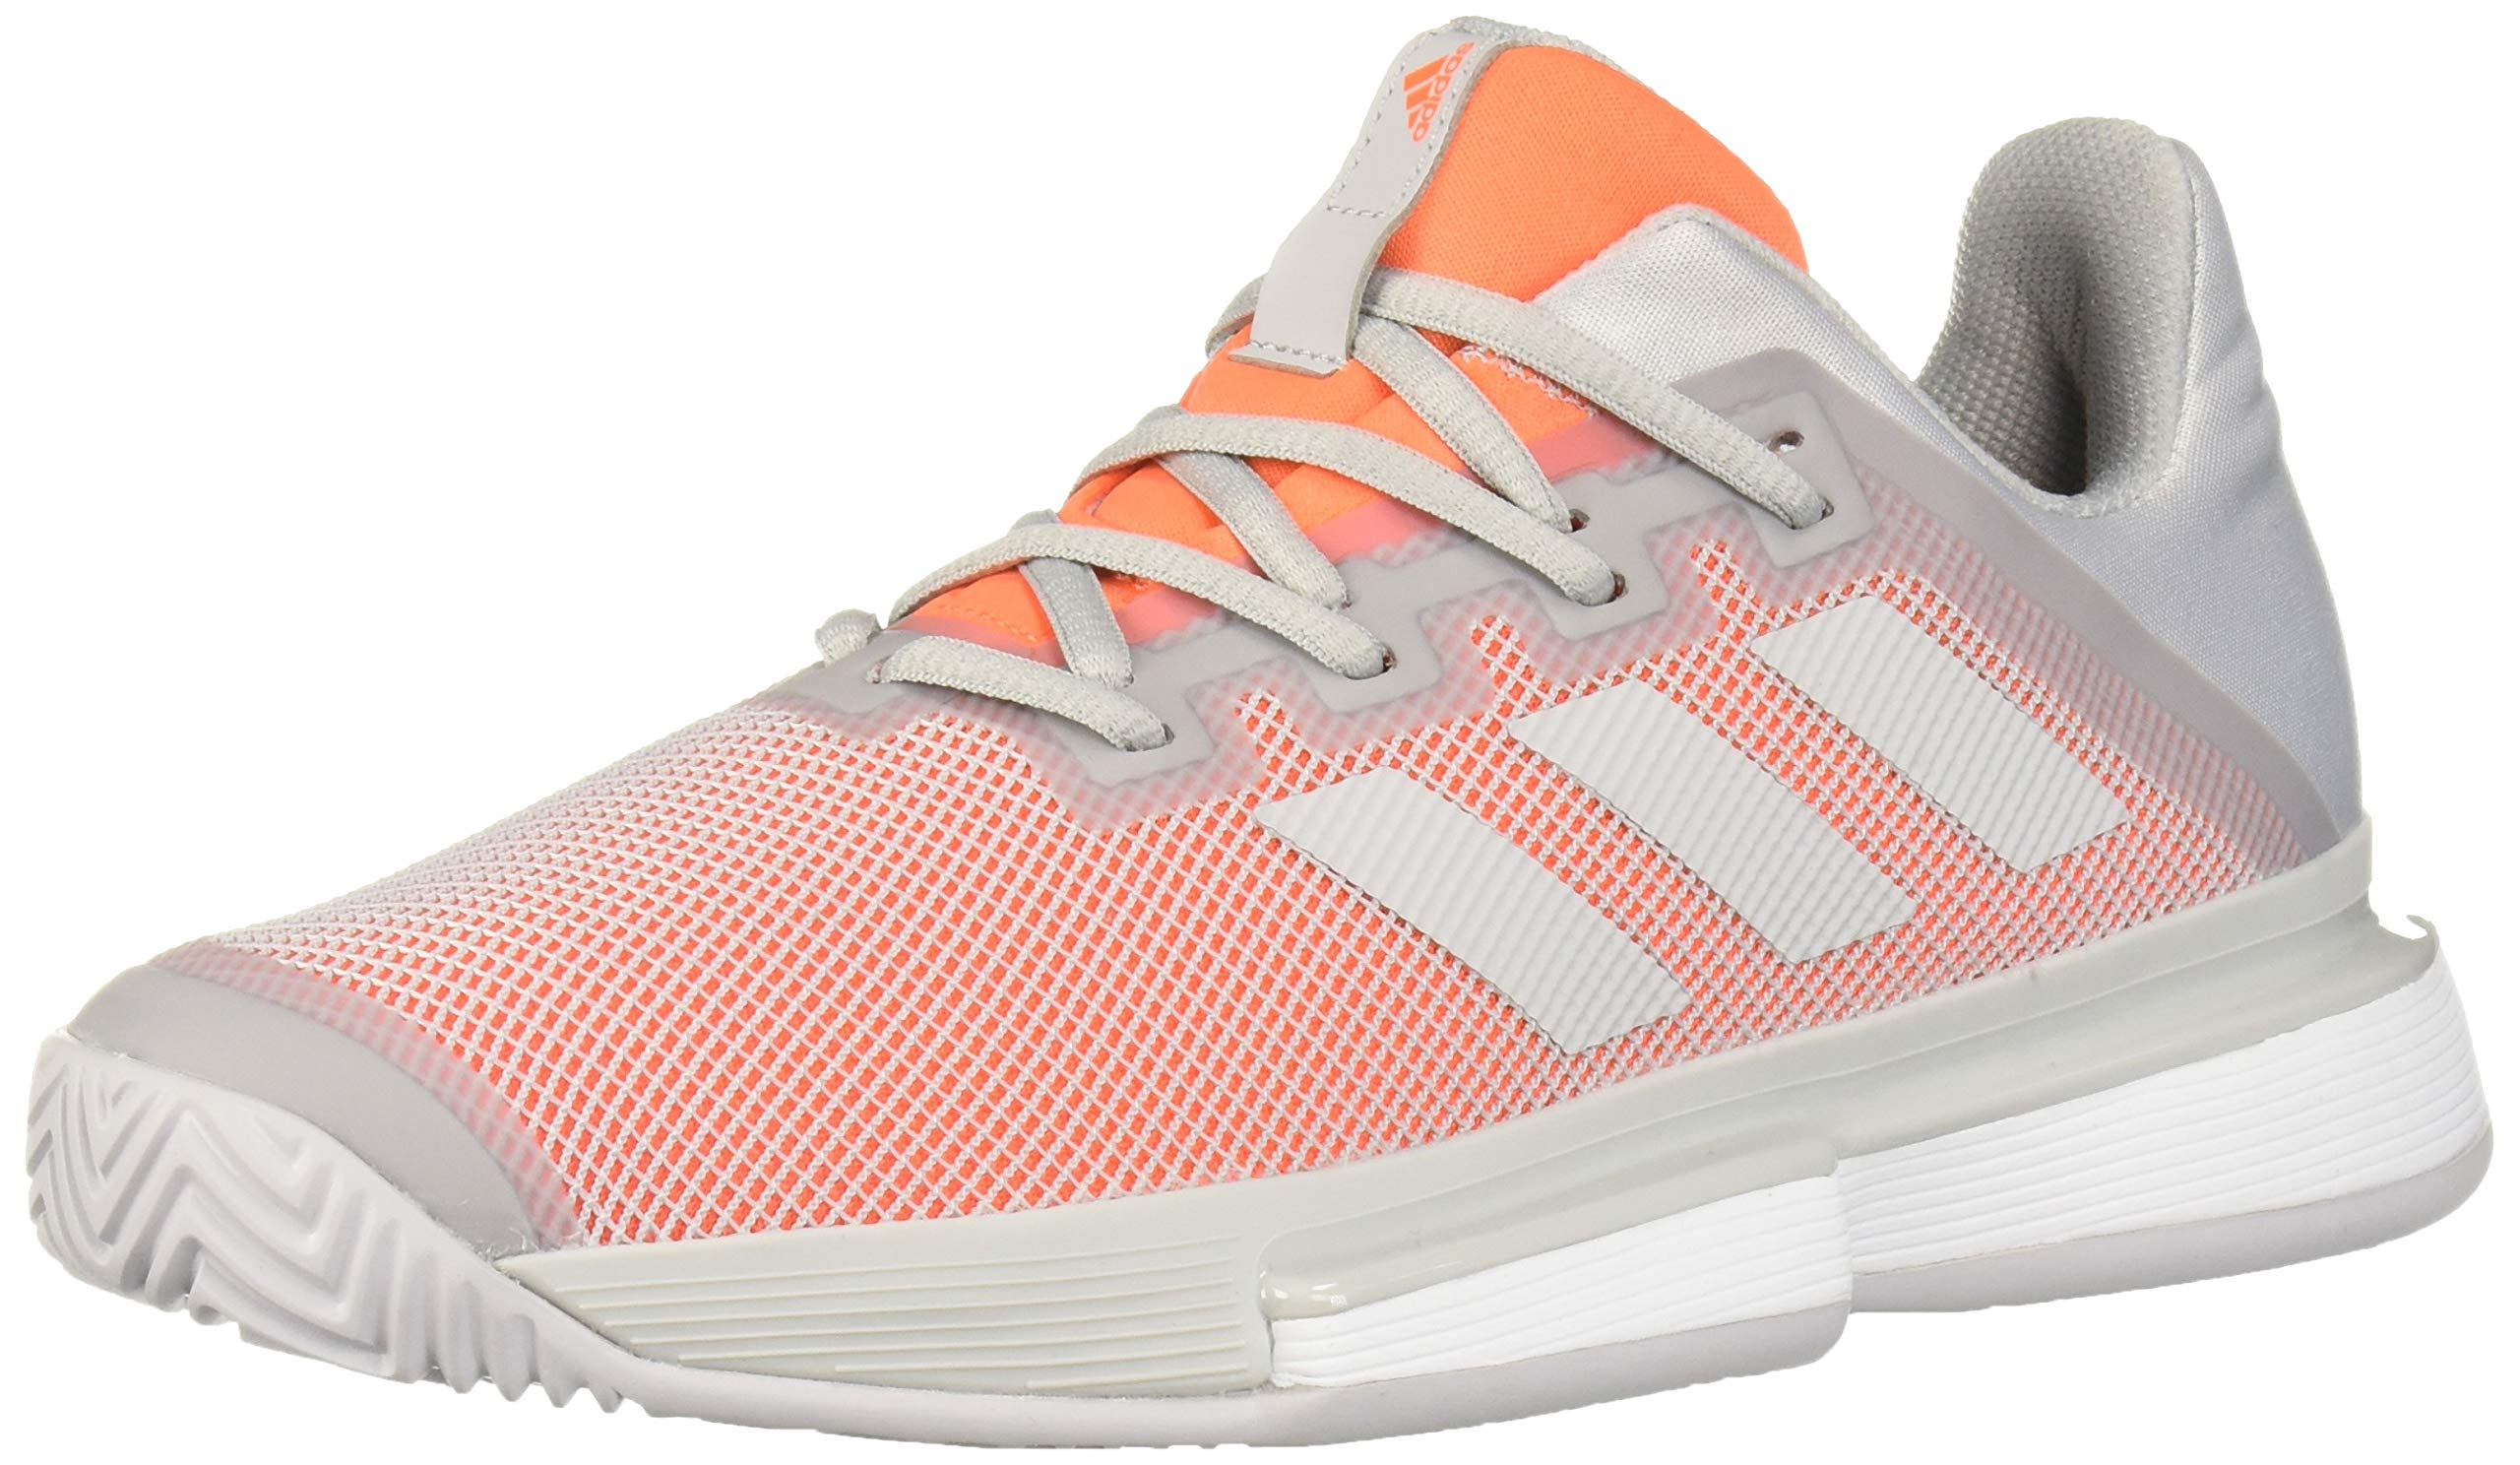 adidas Women's SoleMatch Bounce Tennis Shoe, Light Grey Heather/hi-res Coral, 5 M US